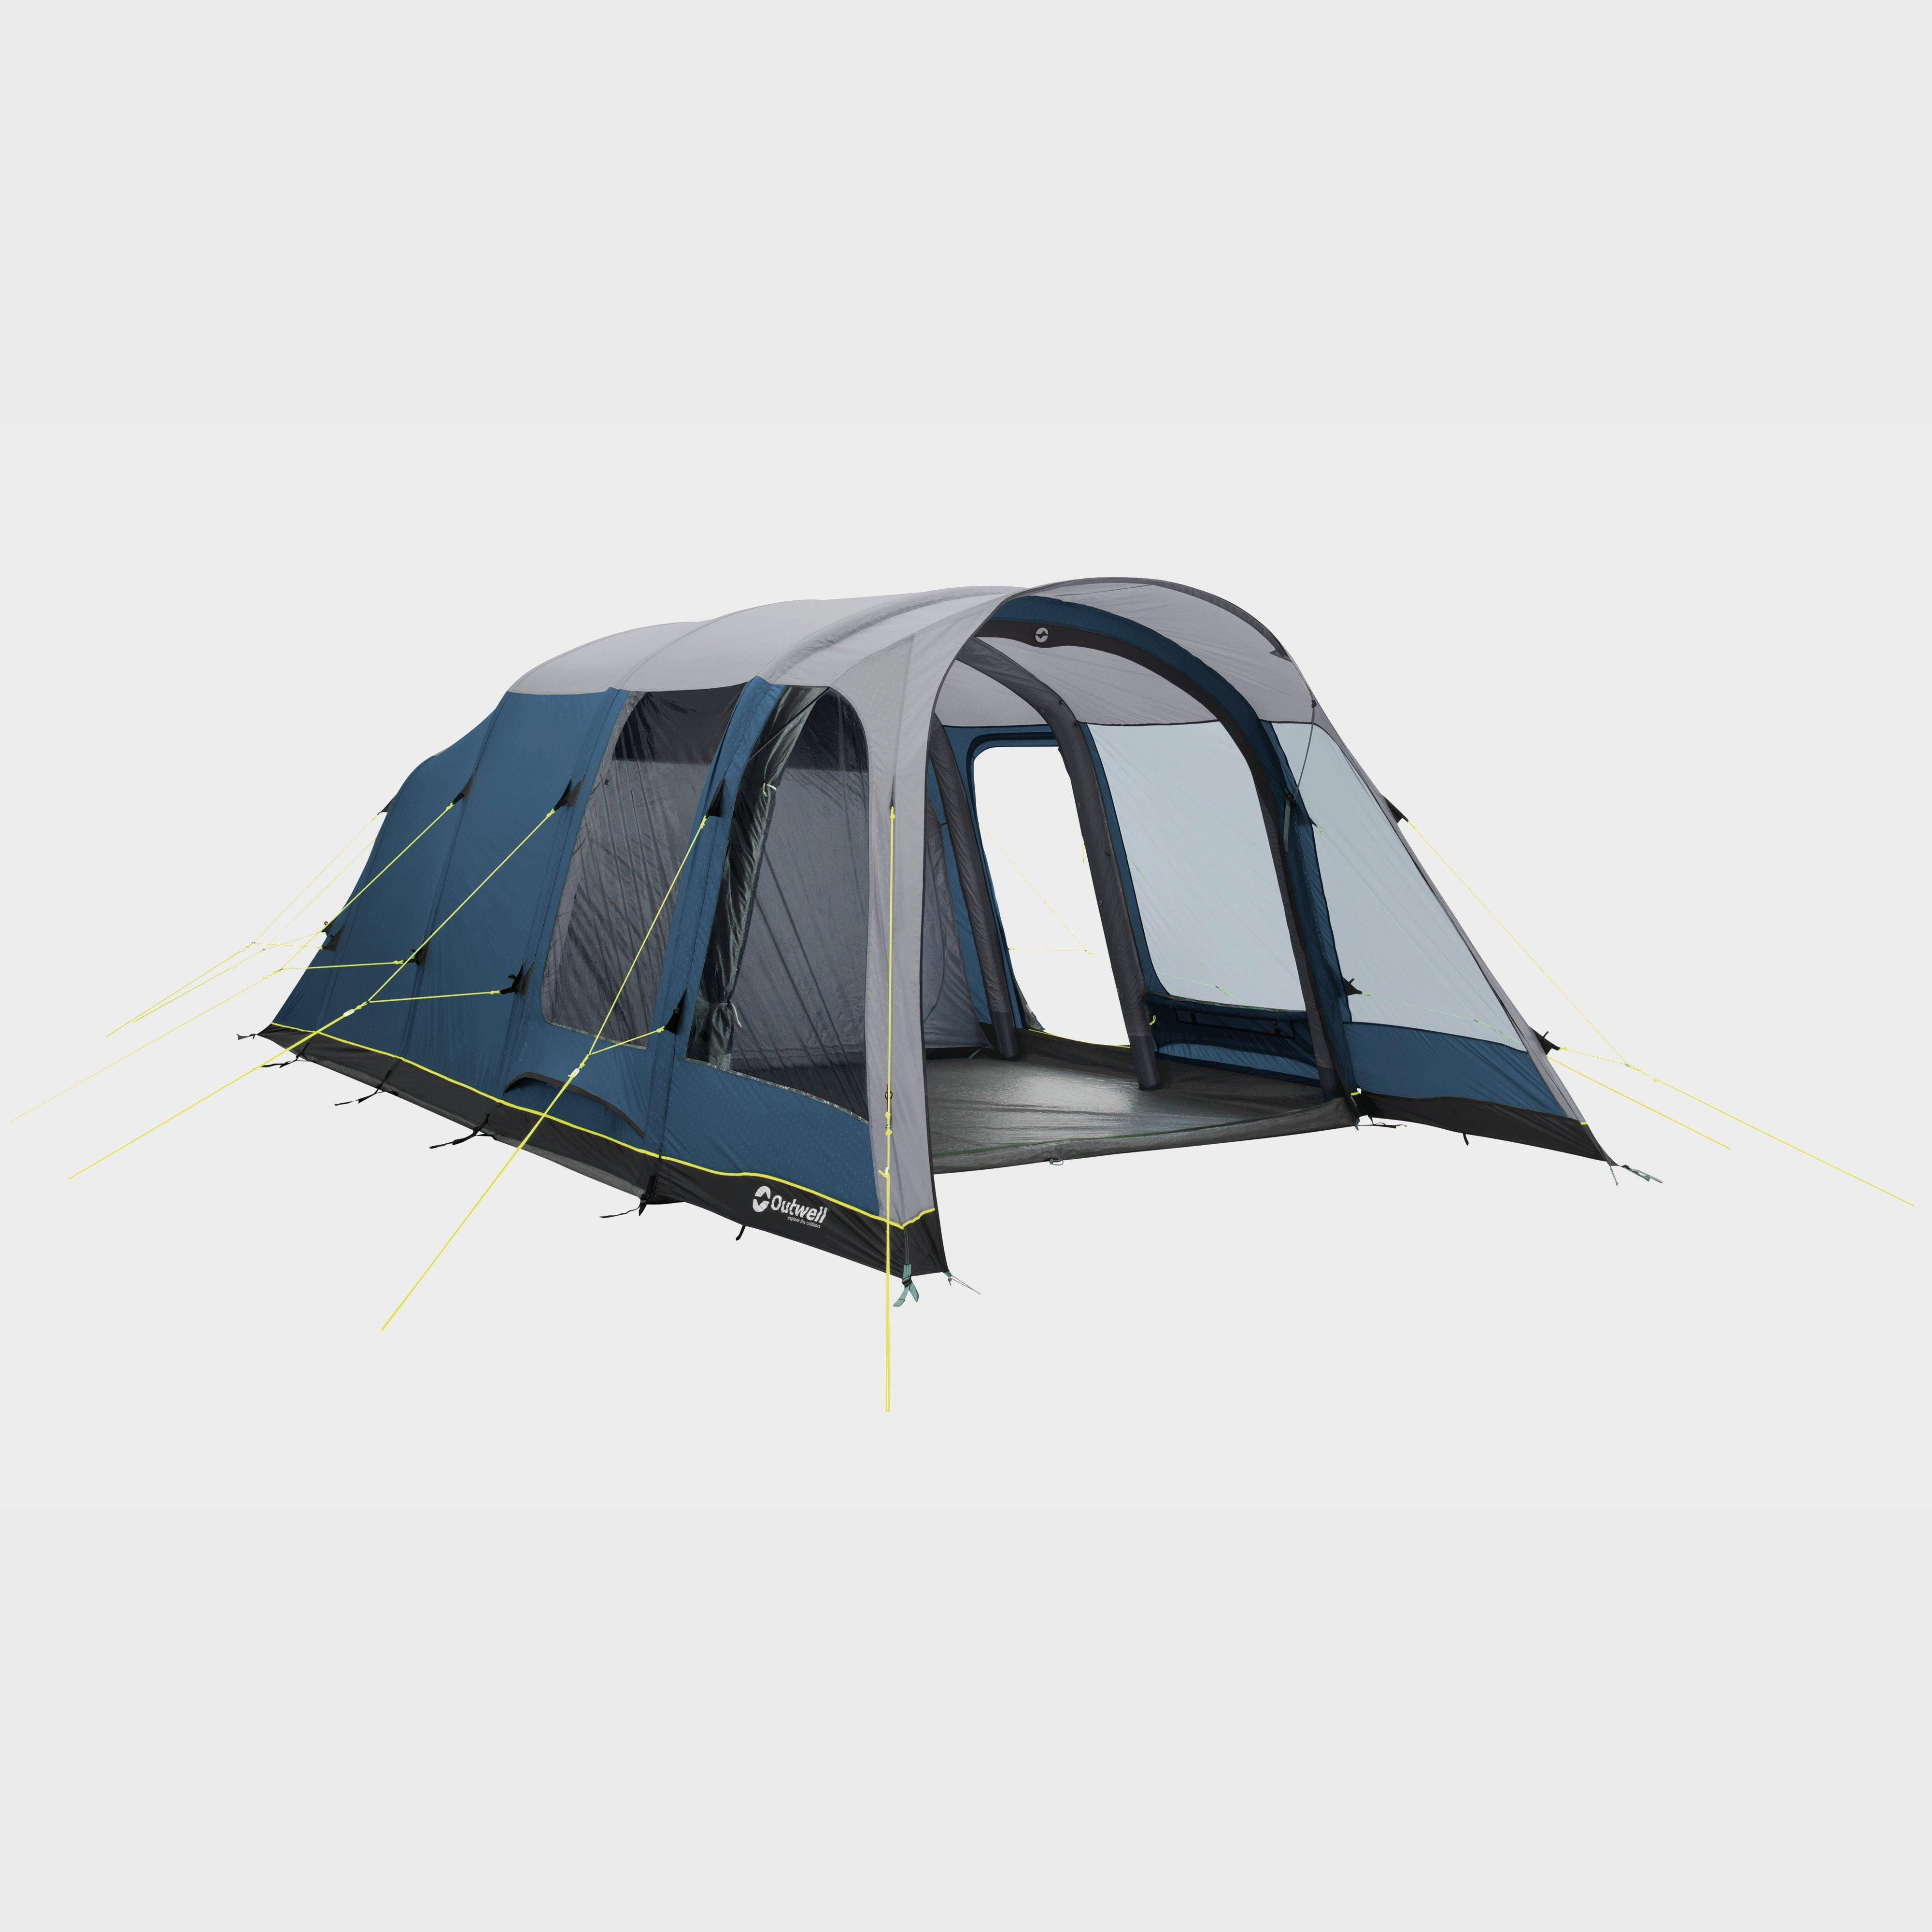 Outwell Douglas 5A Inflatable Family Tent - Navy/5A, Navy/5A